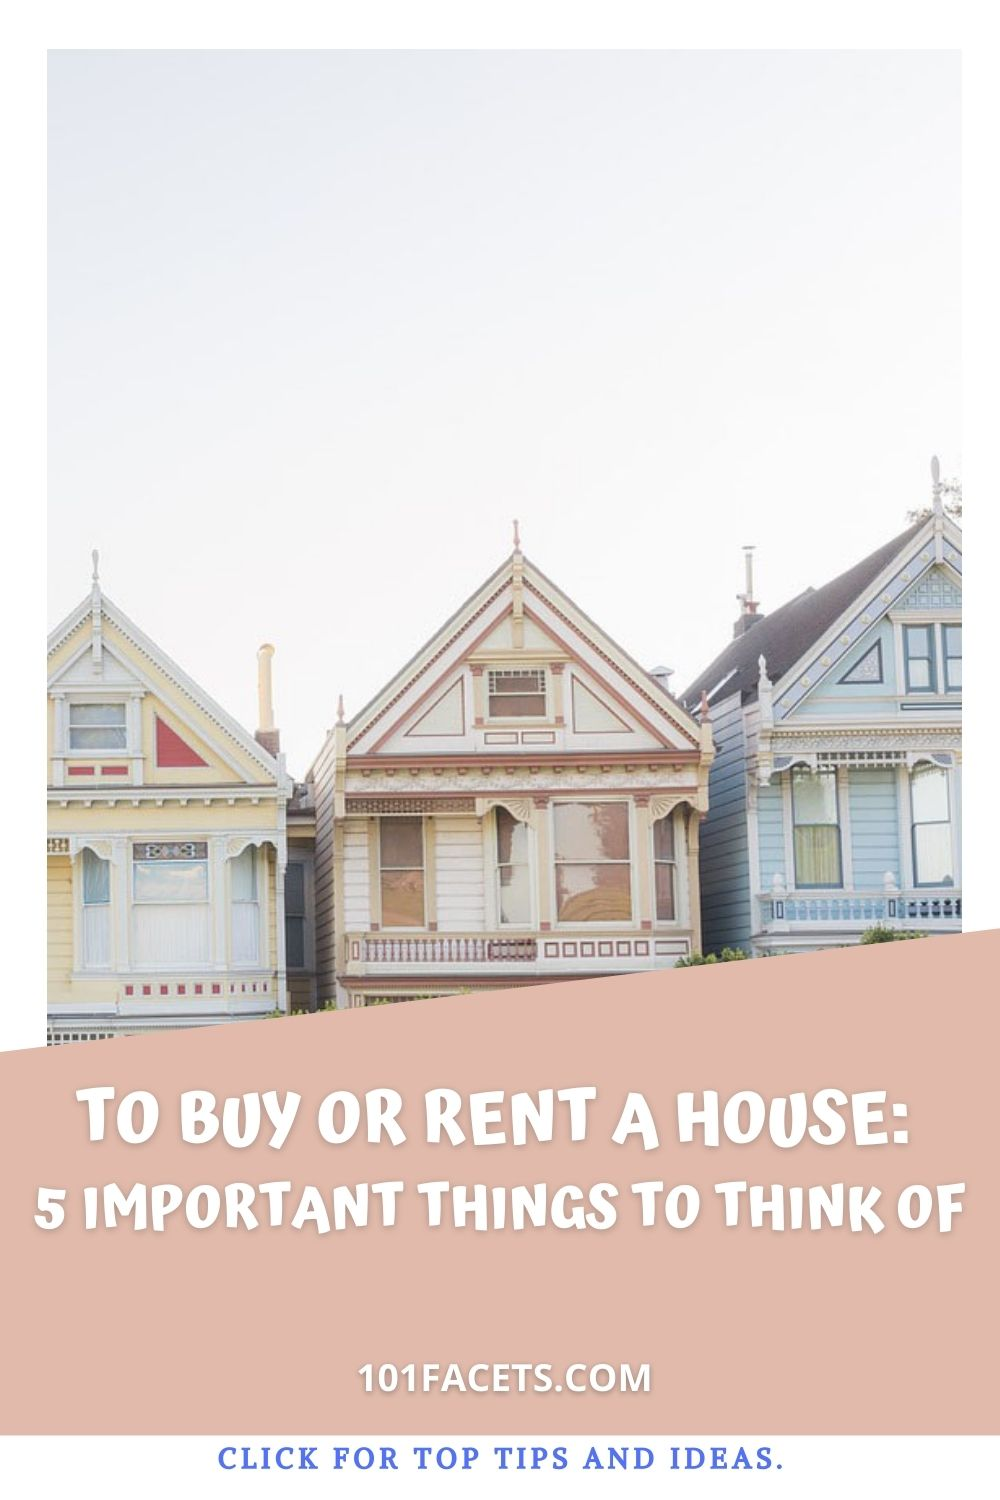 To Buy or Rent a House: 5 Important Things To Think Of